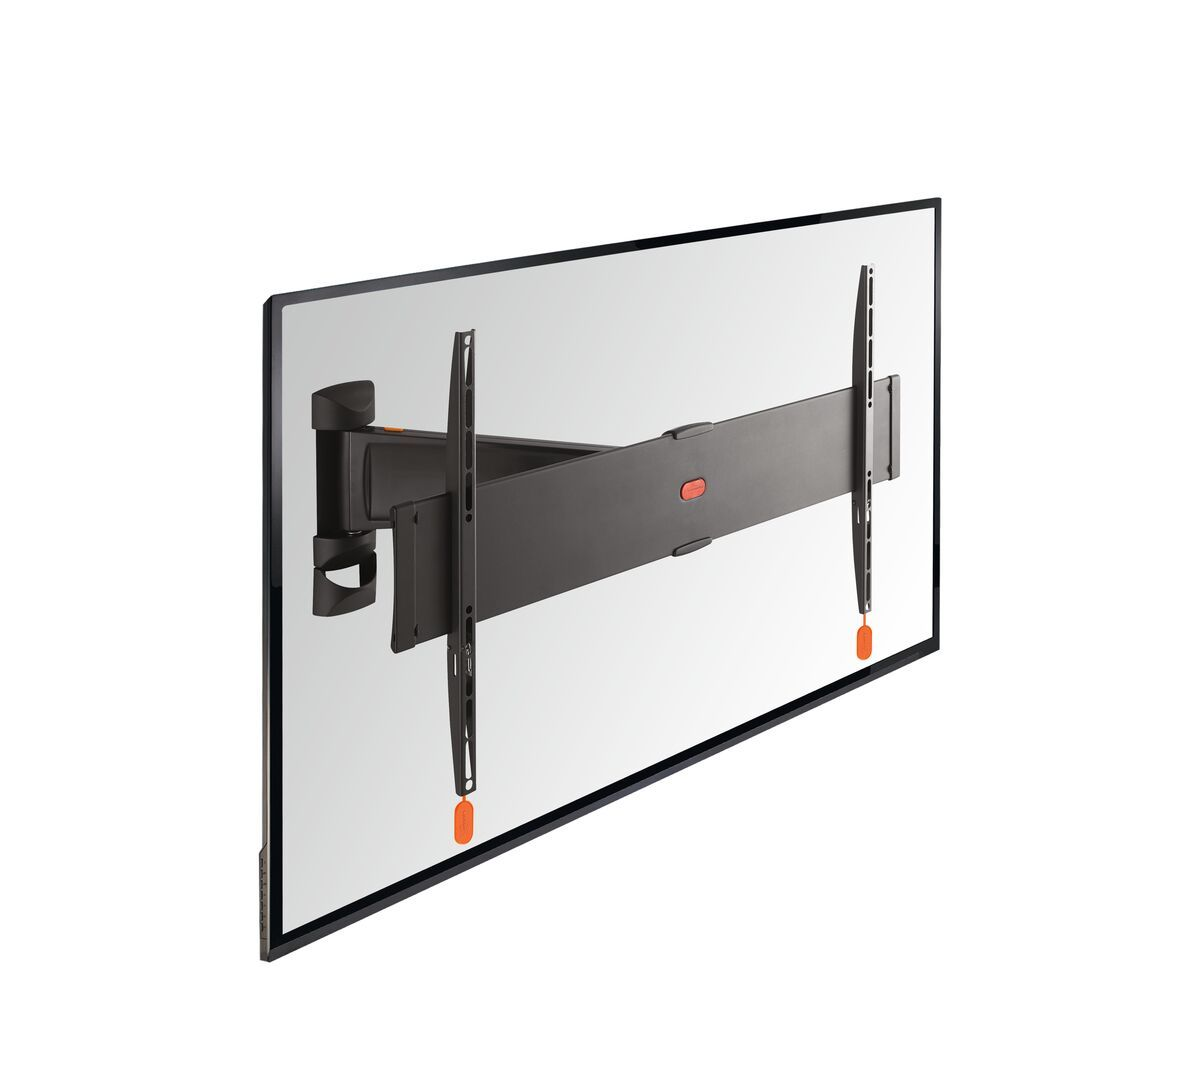 Vogel's BASE 25 L Full-Motion TV Wall Mount - Suitable for 40 up to 65 inch TVs - Motion (up to 120°) - - Product